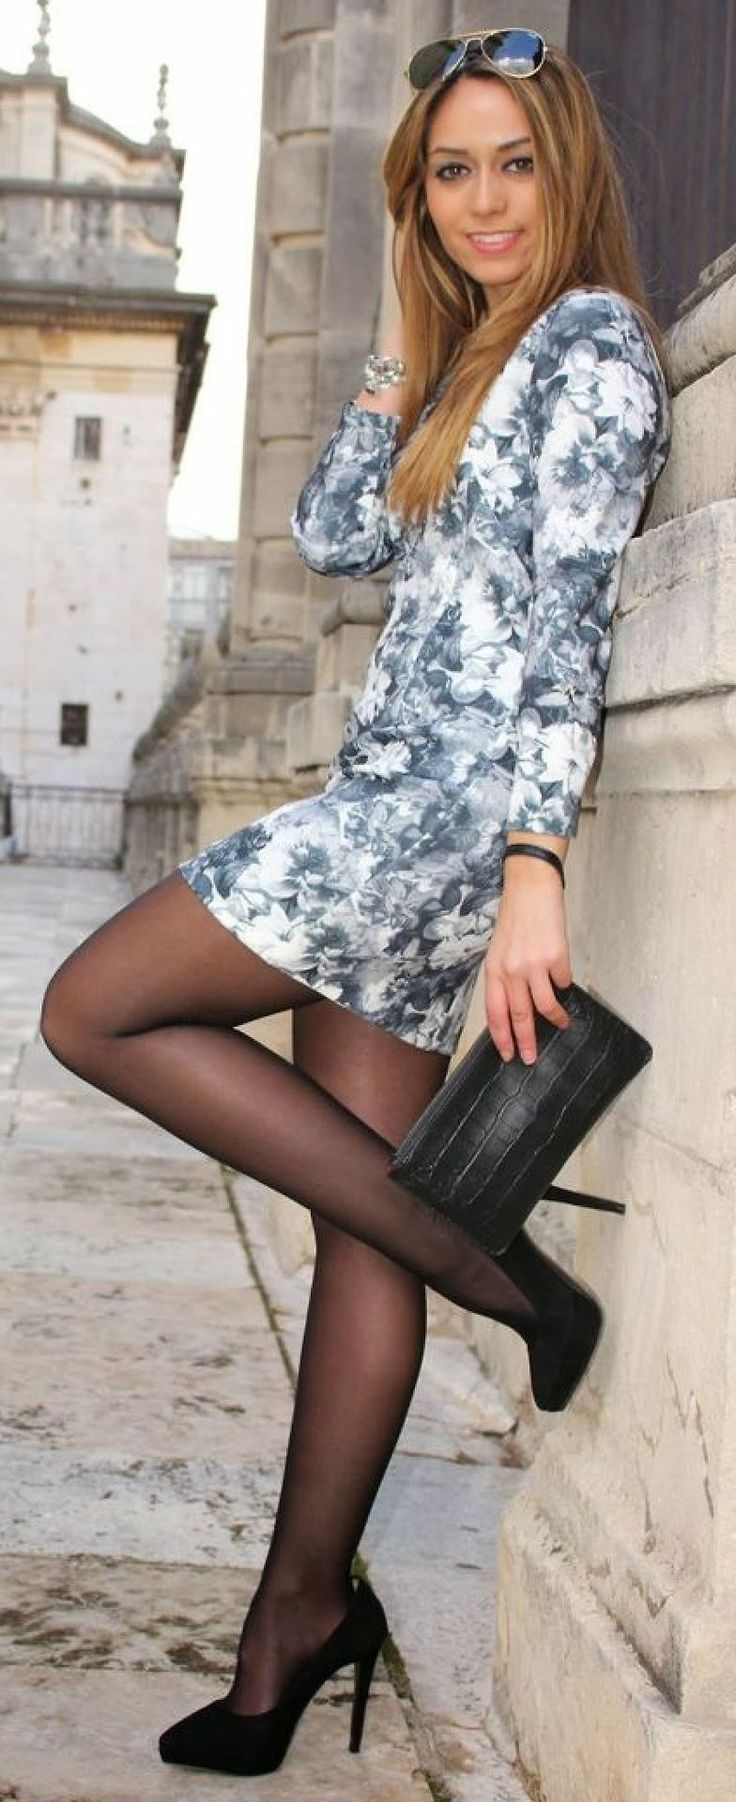 Was not elegant sheer pantyhose and sexy